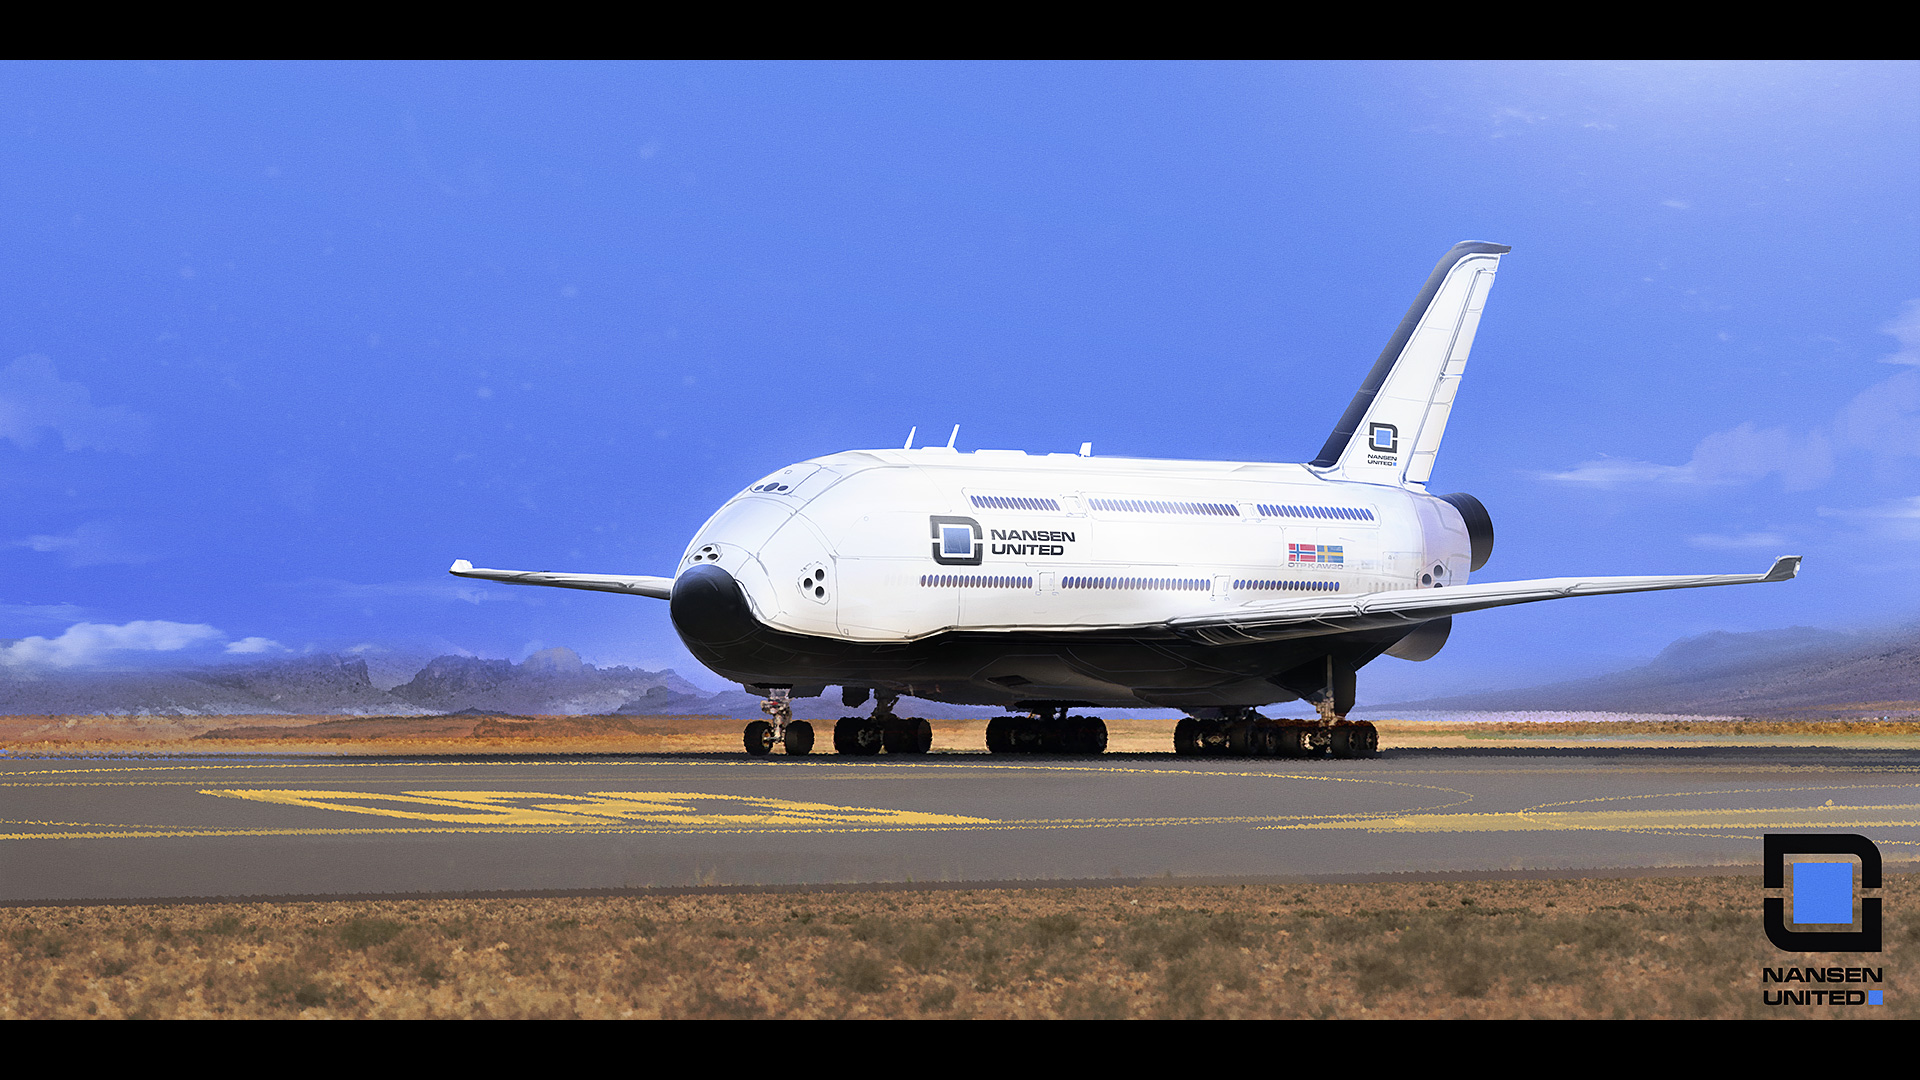 Spaceplane 1 by macrebisz on deviantart for Passengers spaceship